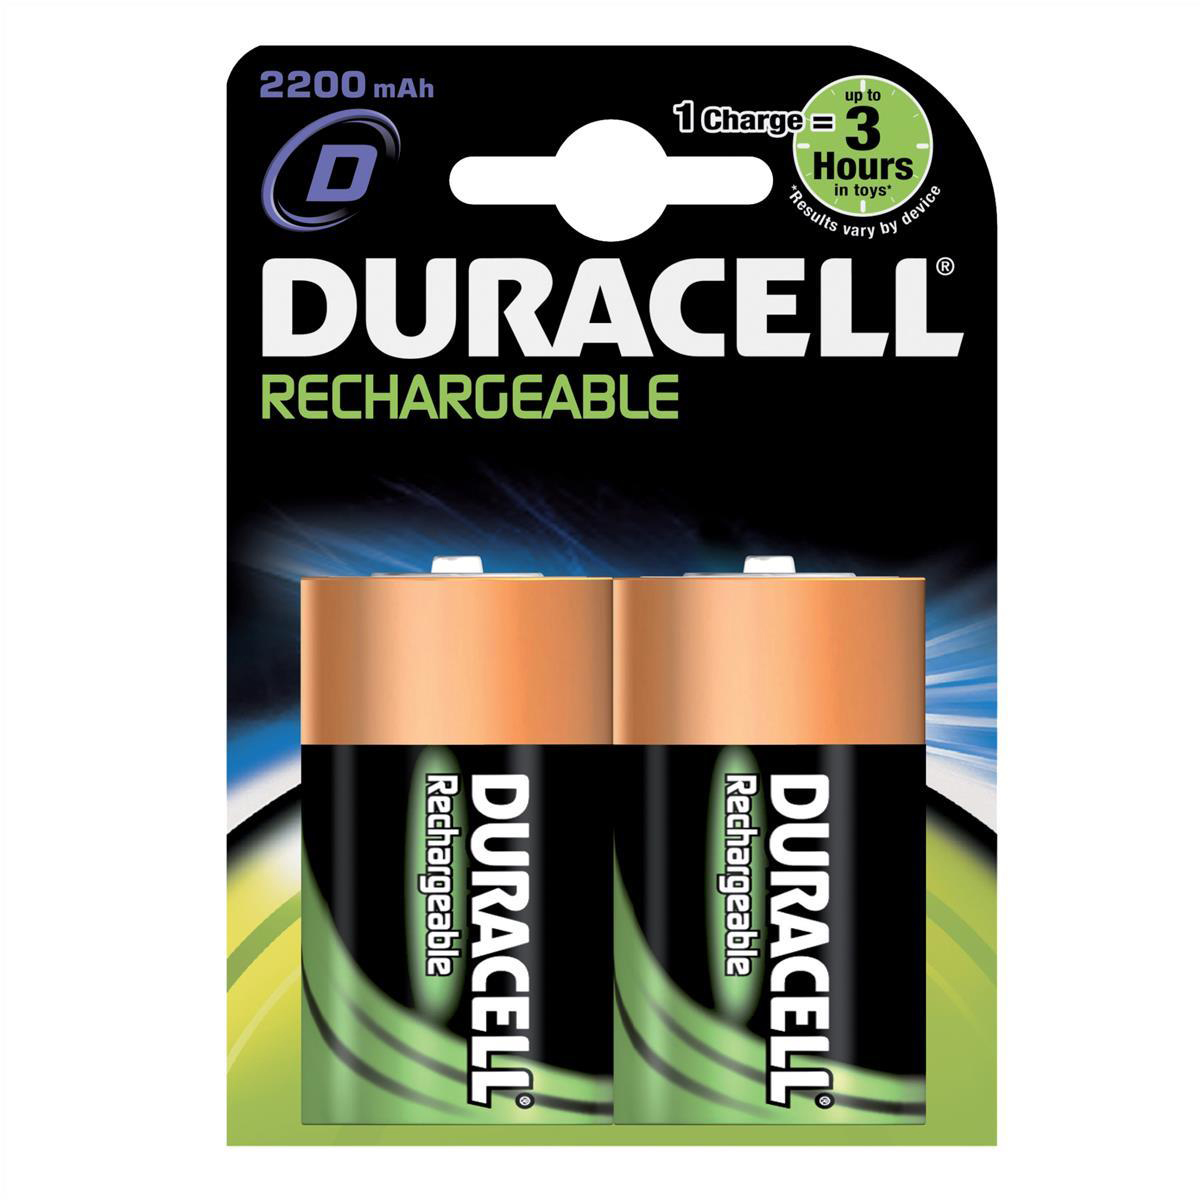 Duracell Battery Rechargeable Accu NiMH Capacity 2200mAh D Ref 81364737 Pack 2